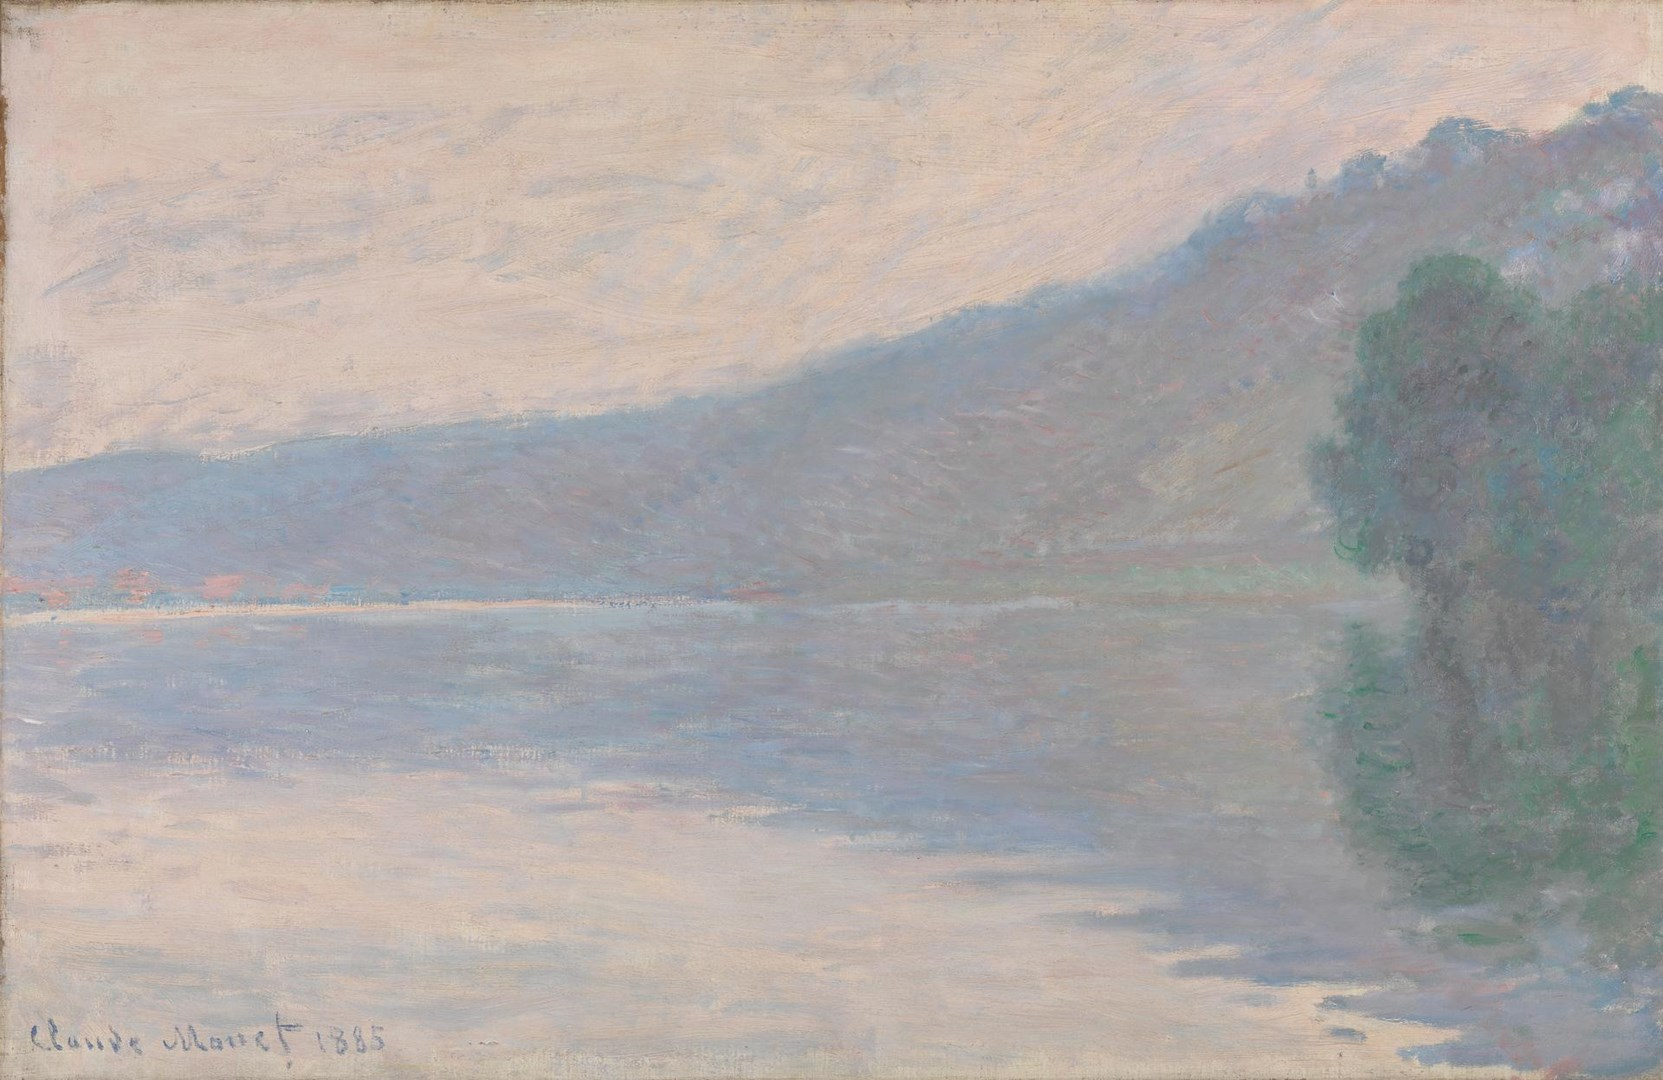 The Seine at Port-Villez by Claude Monet